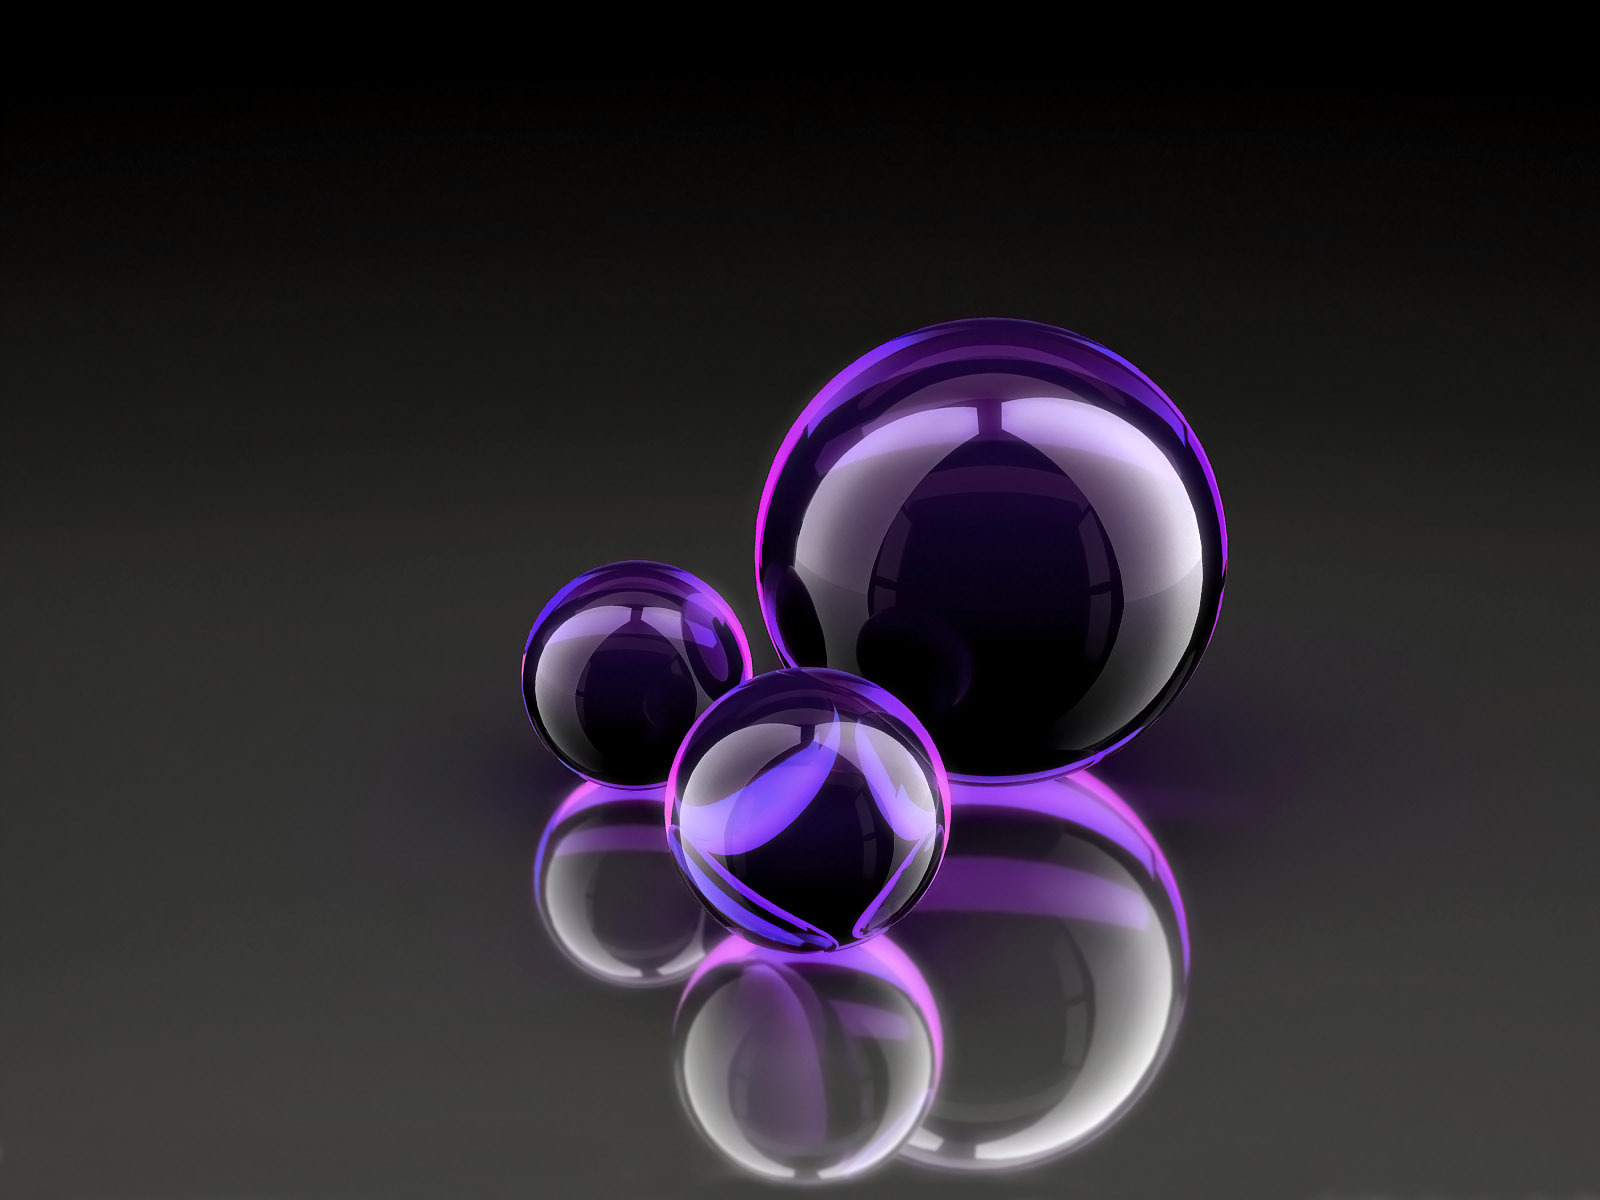 Purple images Purple bubbles HD wallpaper and background photos 1600x1200